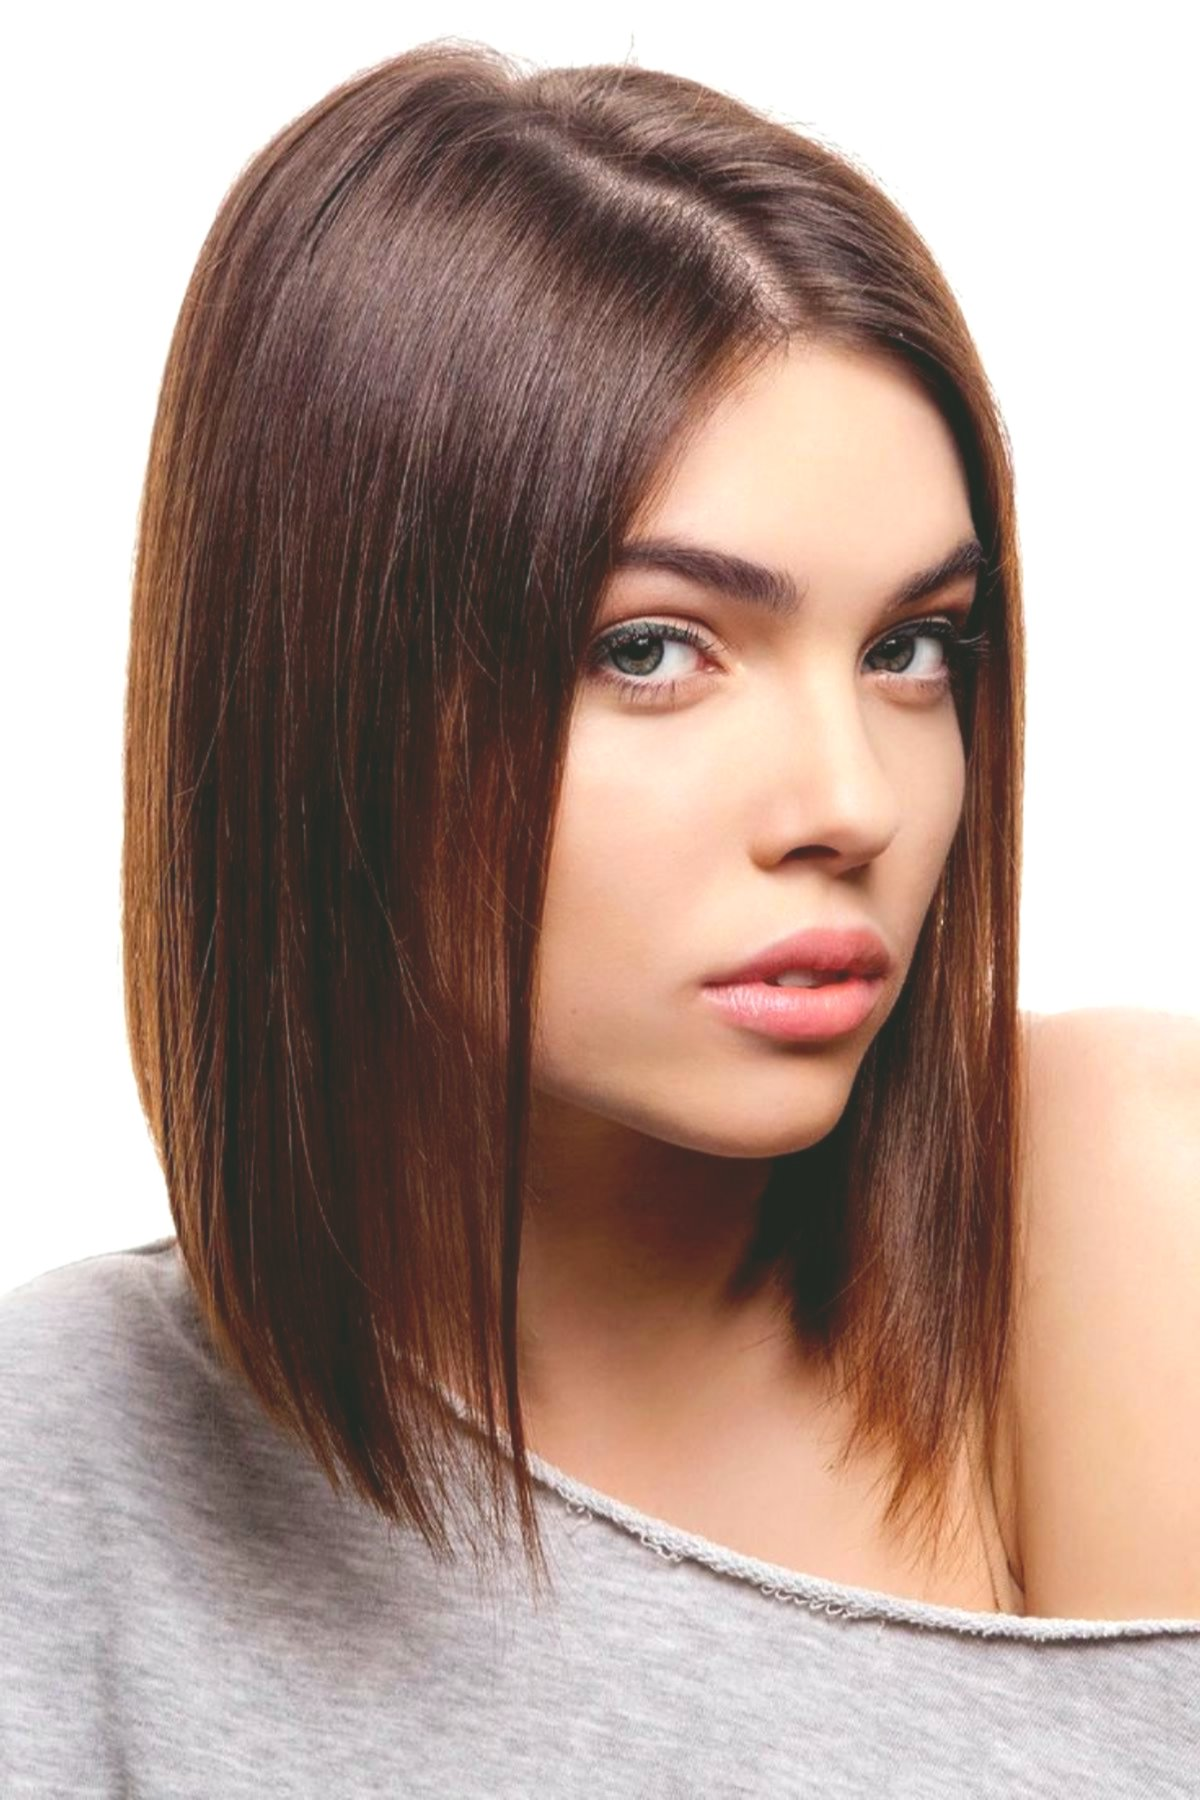 luxury image of woman hairstyles architecture-elegant image of woman hairstyles gallery